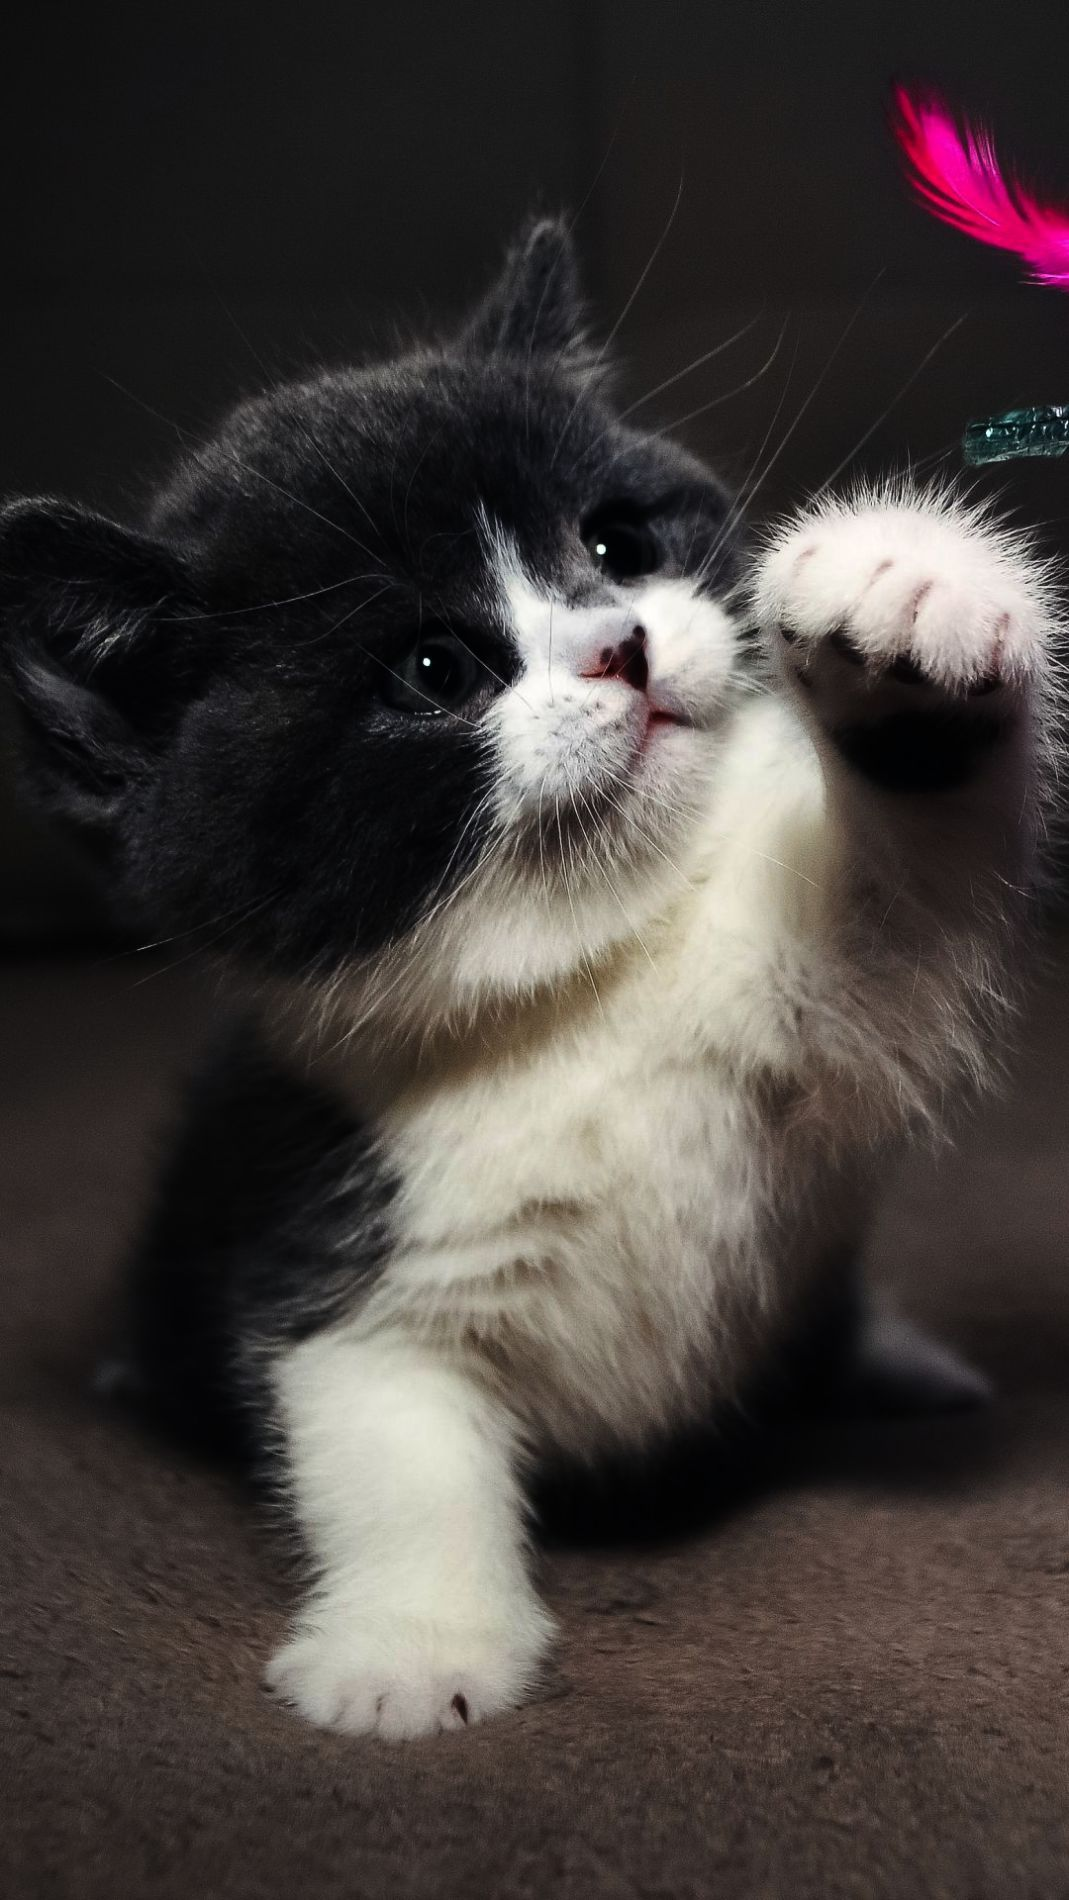 Cats And Kittens Brisbane Cats And Kittens On Youtube Kittens Cutest Cute Cats And Kittens Cute Animals